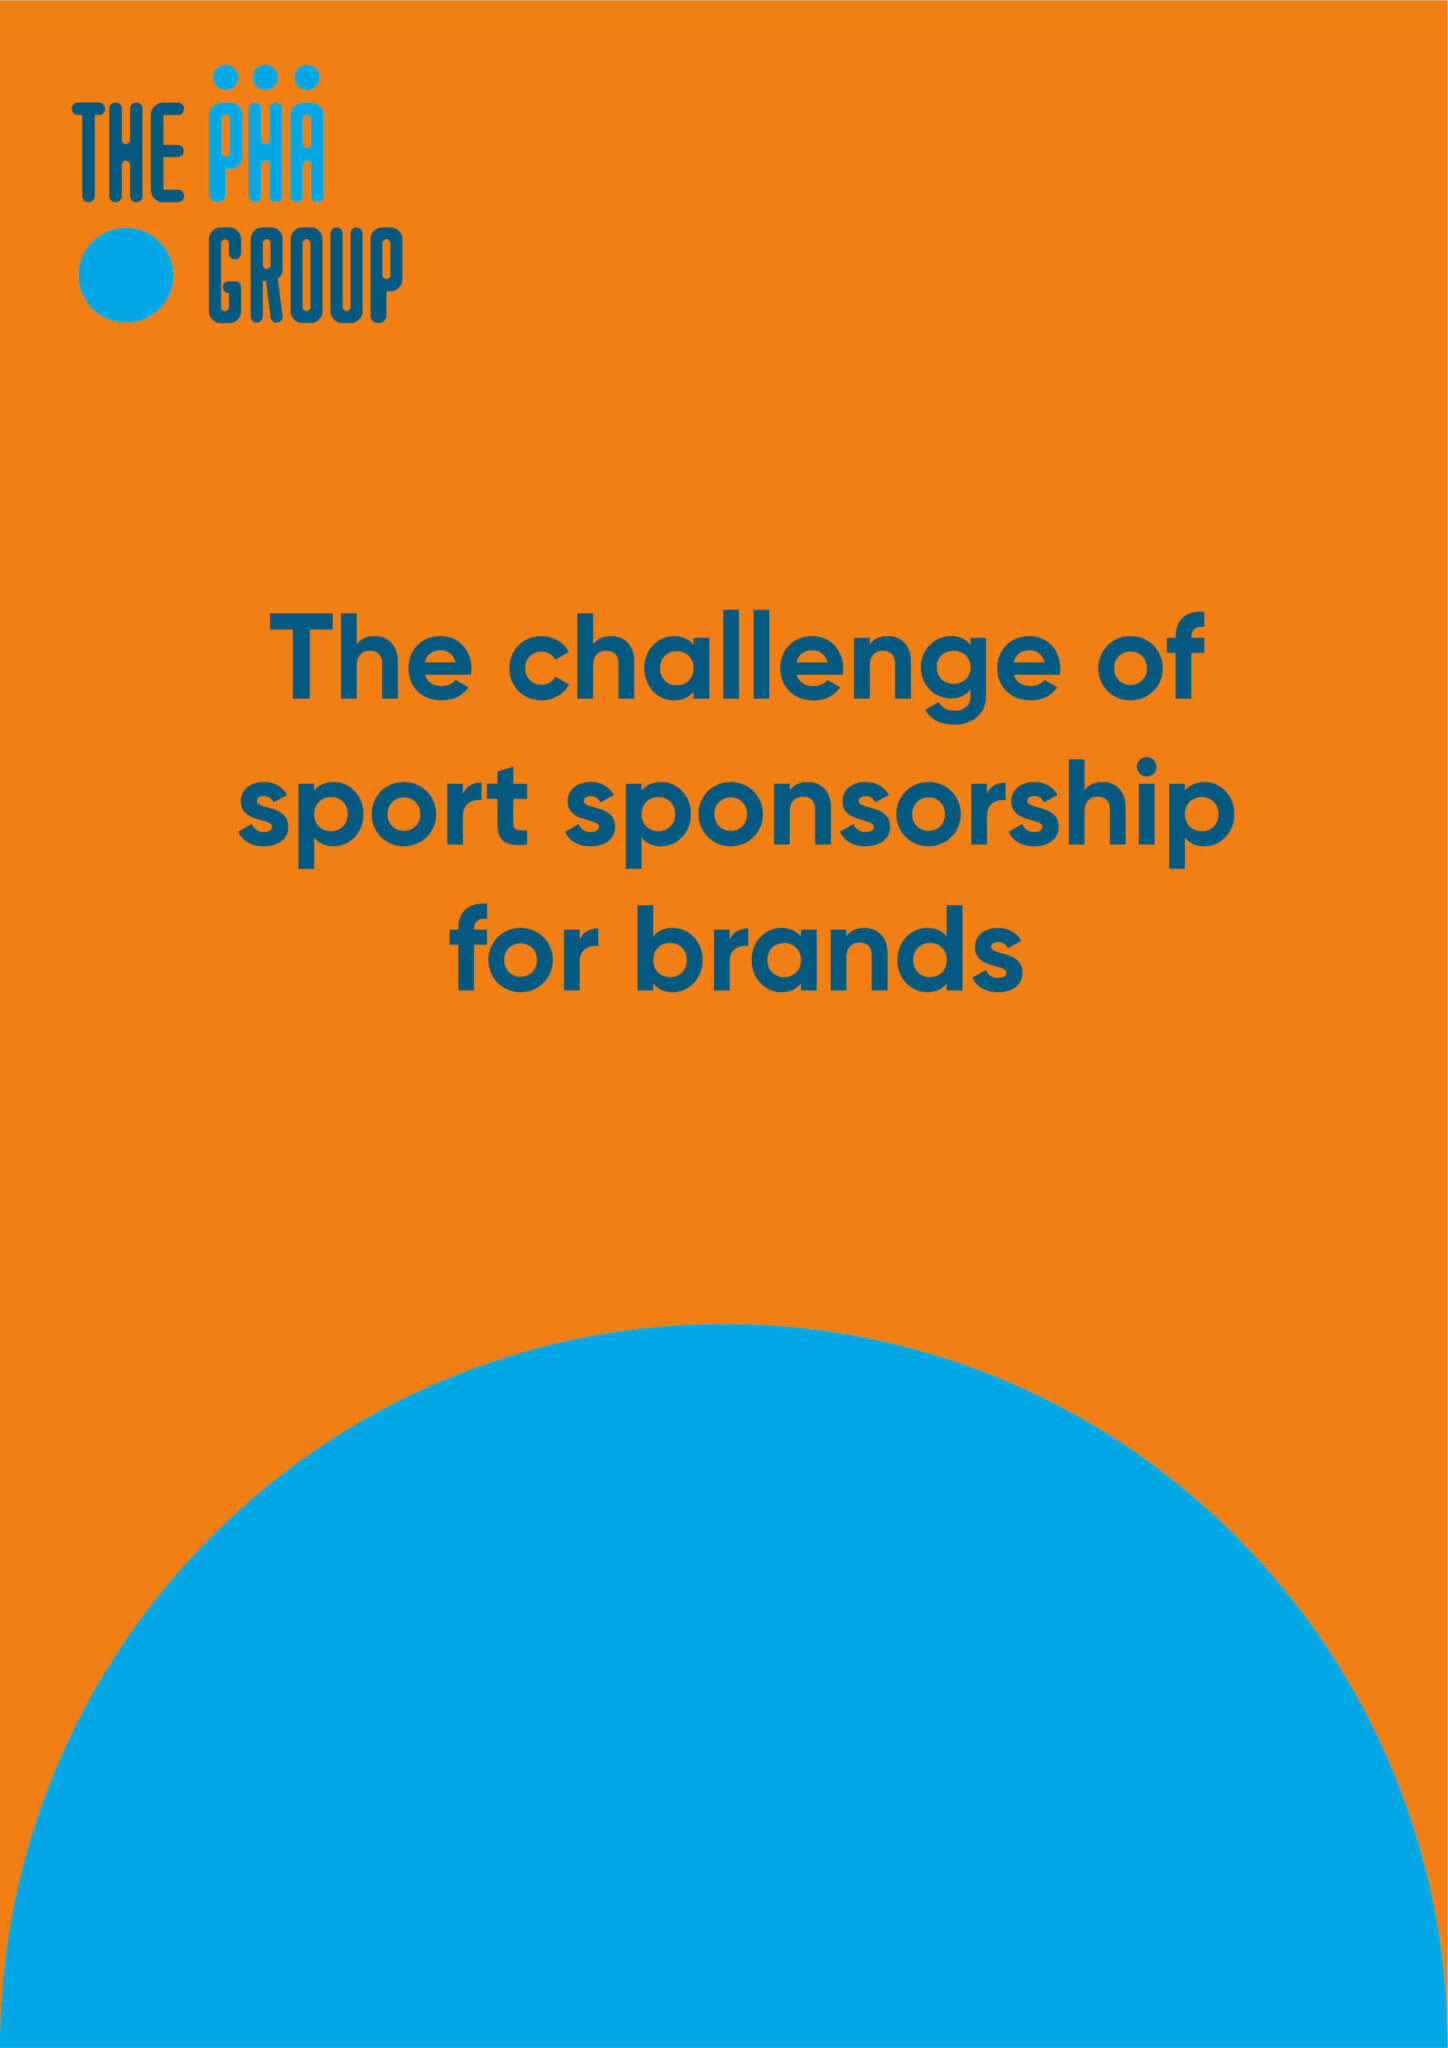 The challenge of sport sponsorship for brands